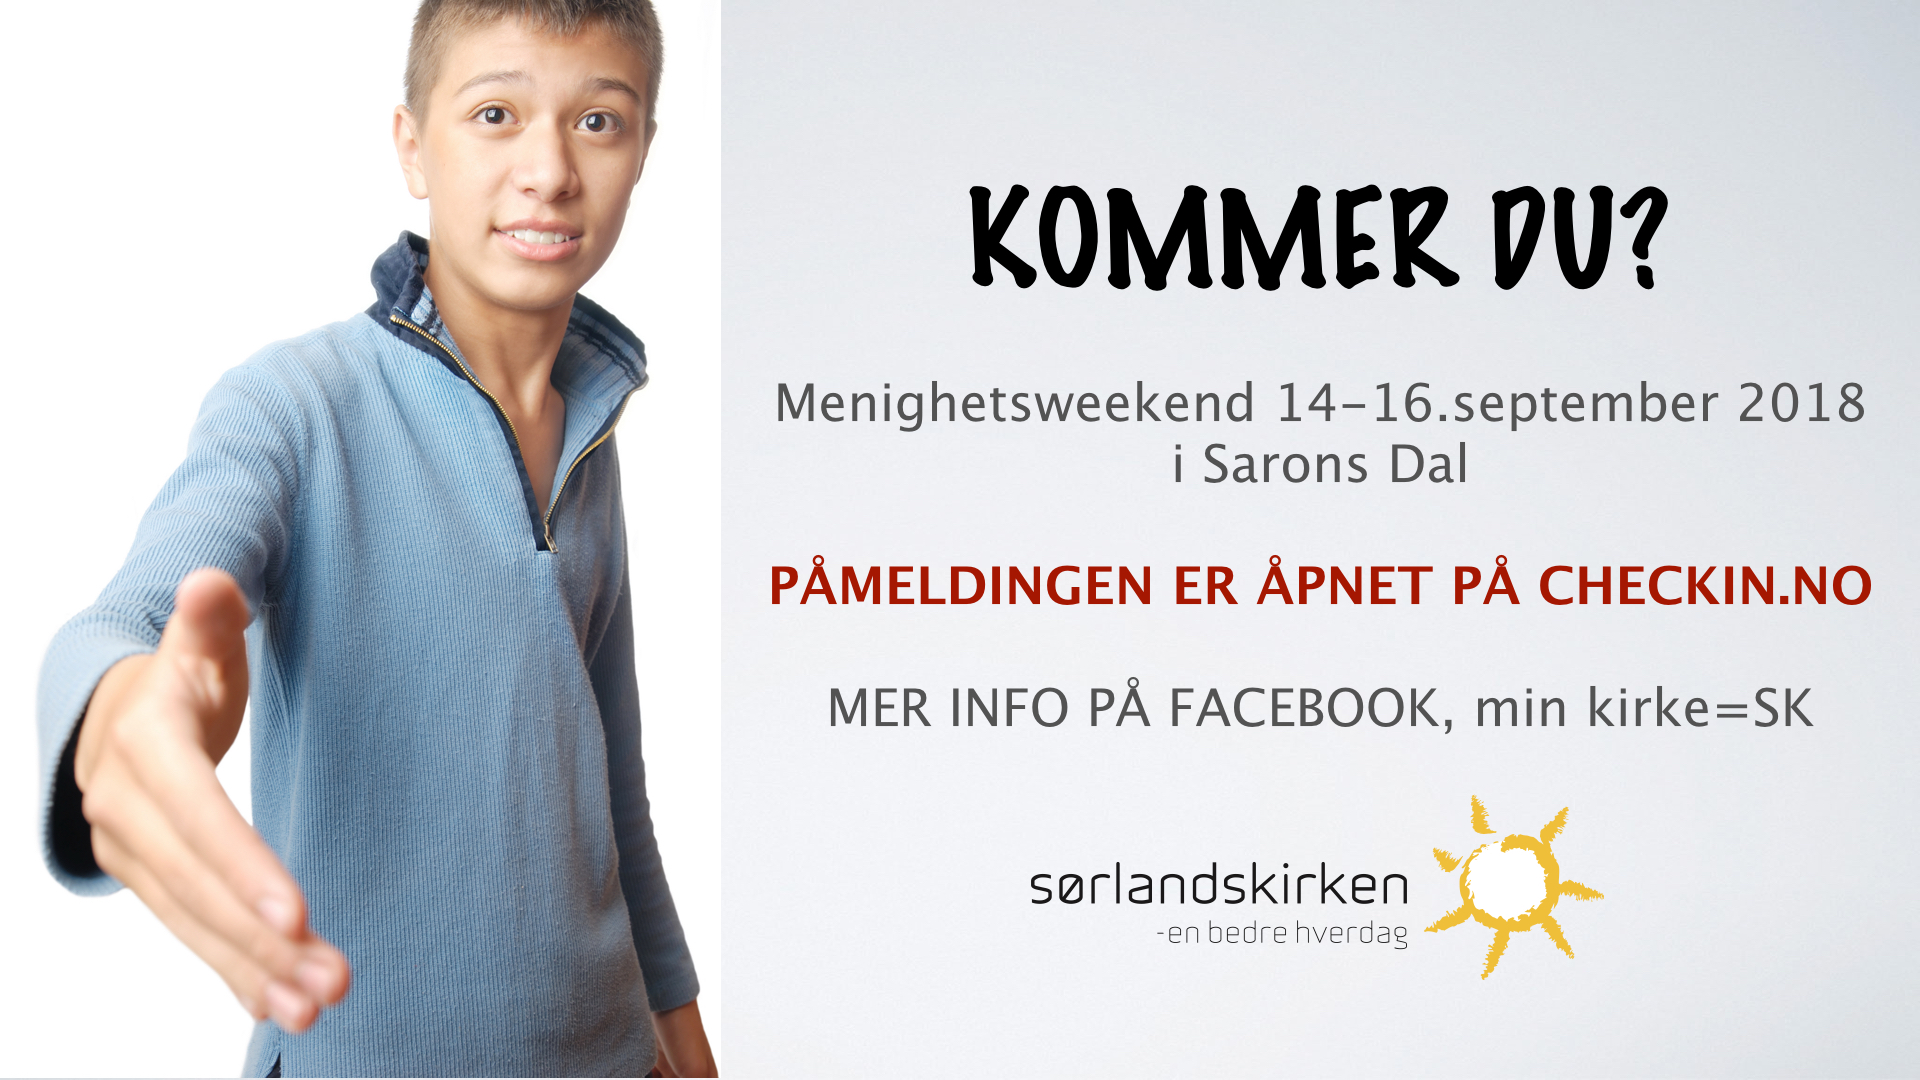 Menighetsweekend til Sarons Dal 14-16 september